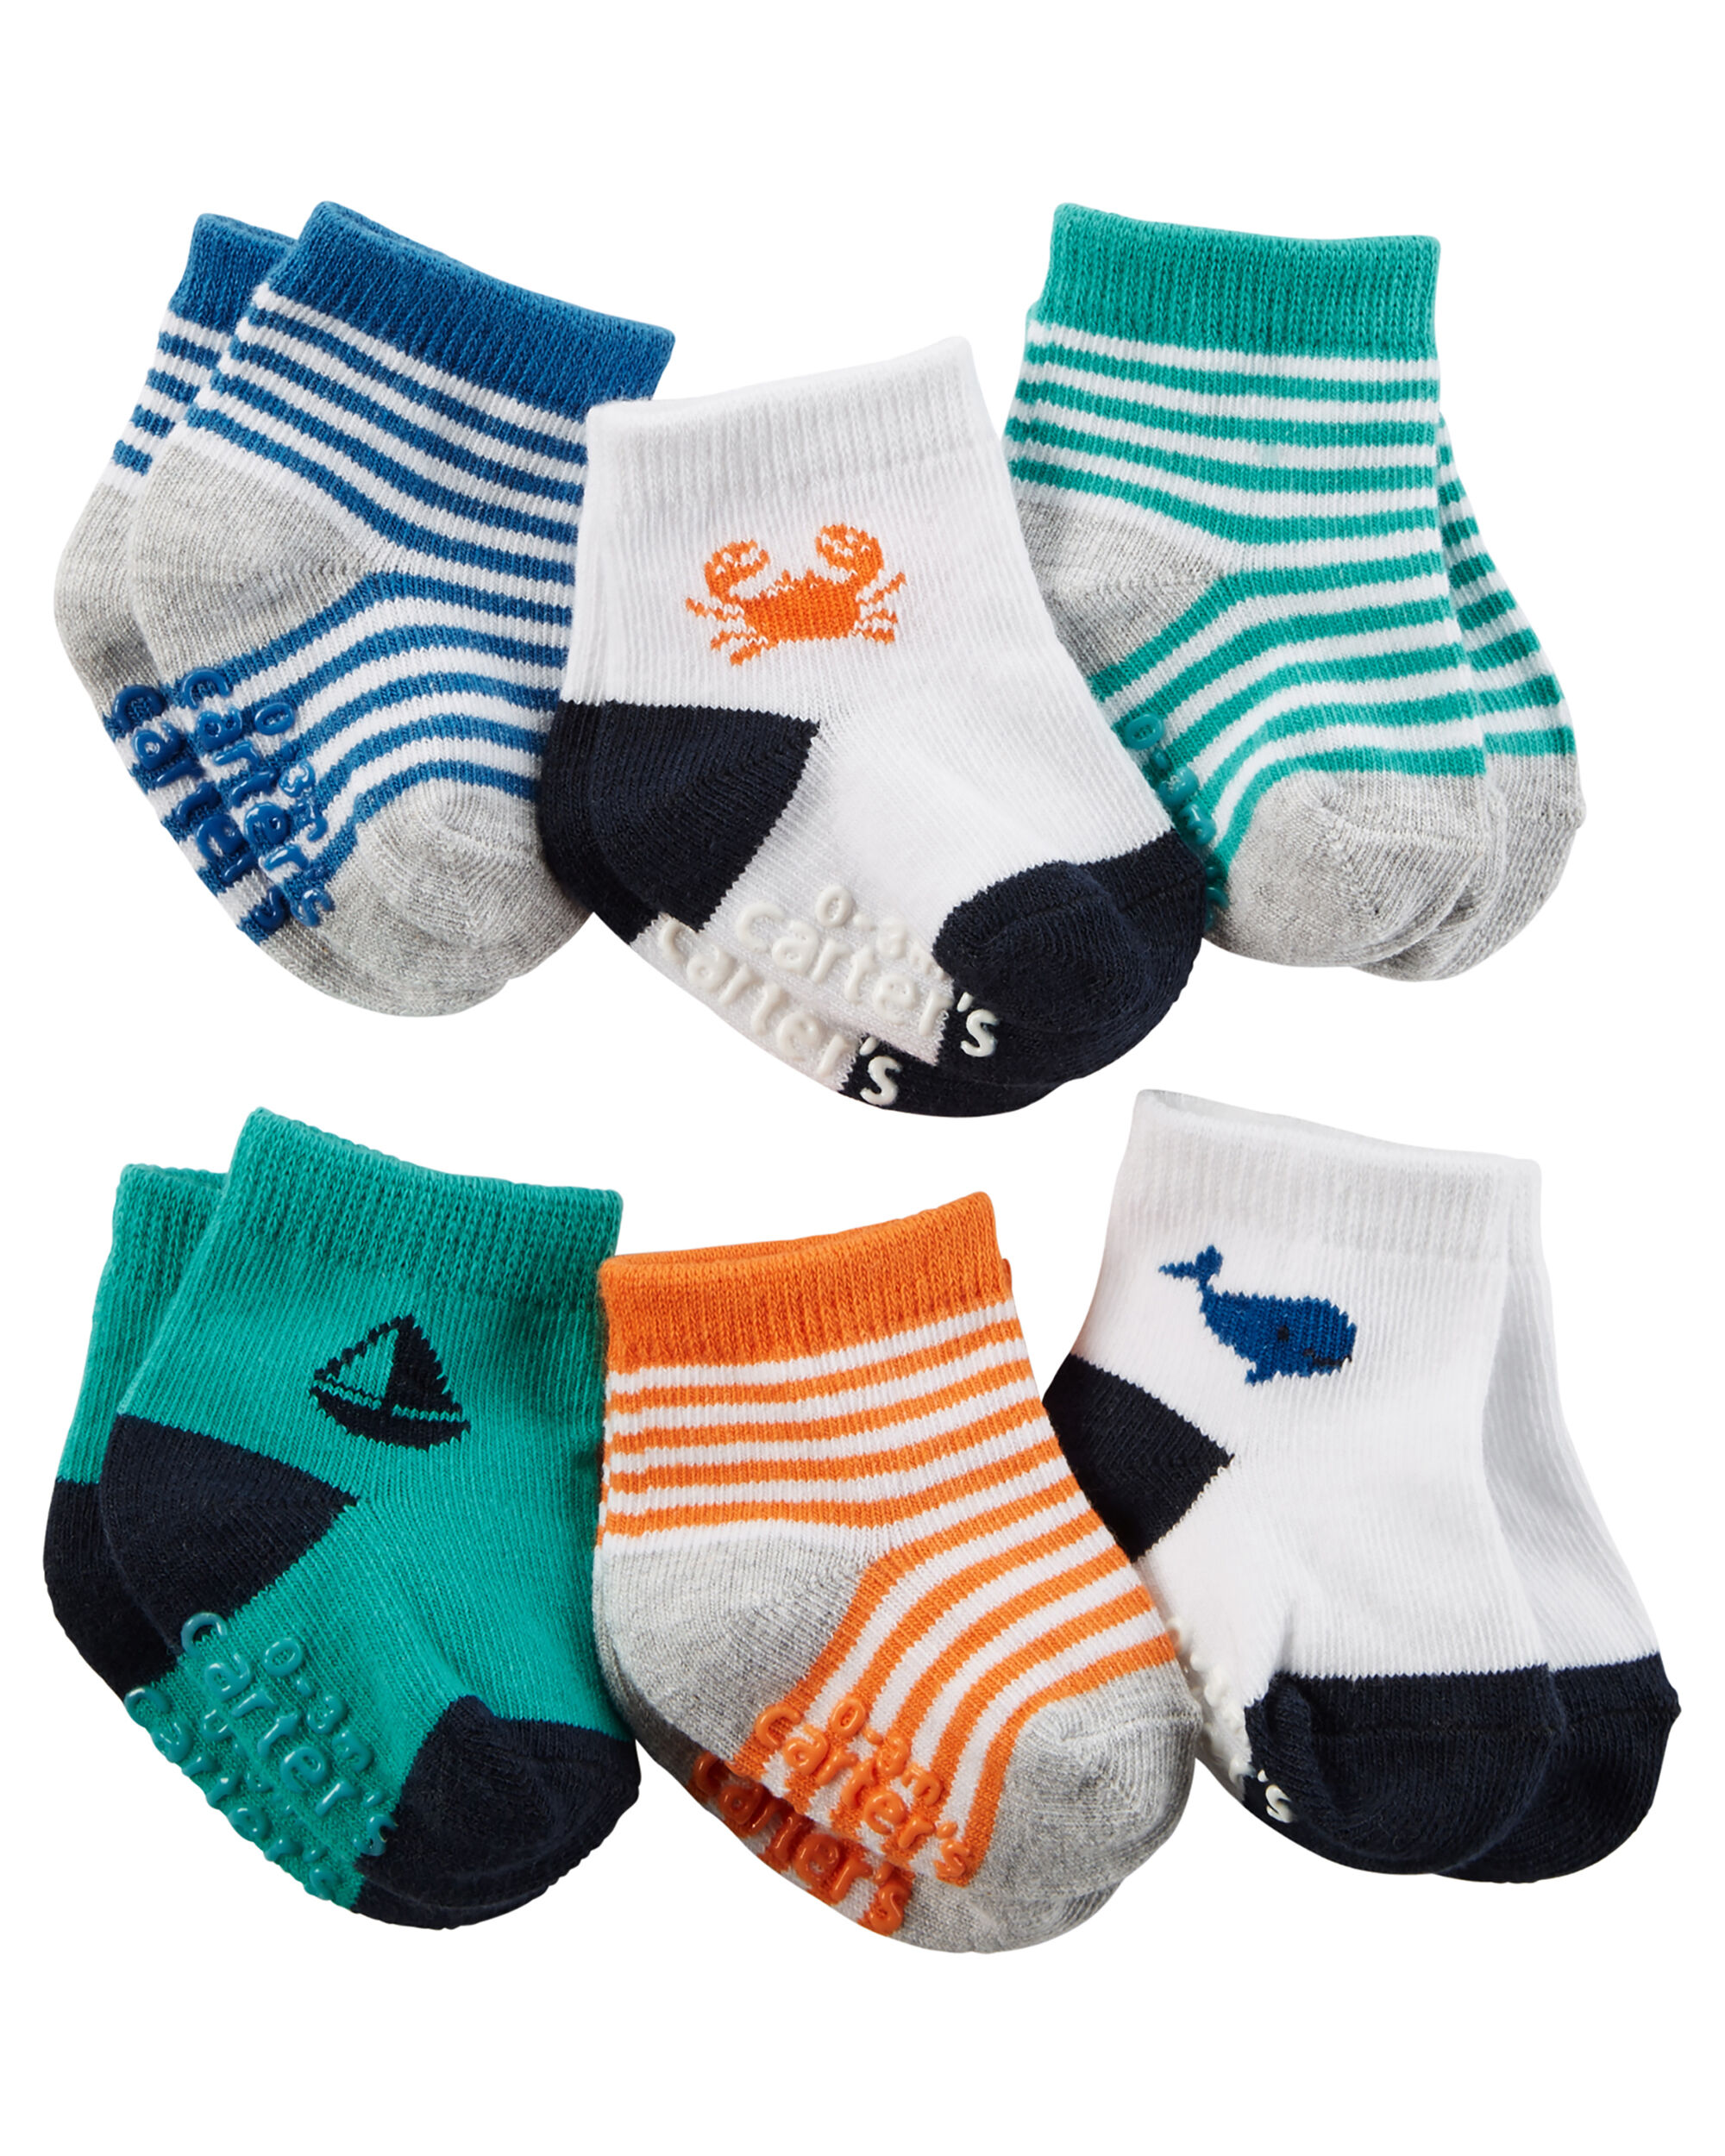 6 Pack Striped Socks